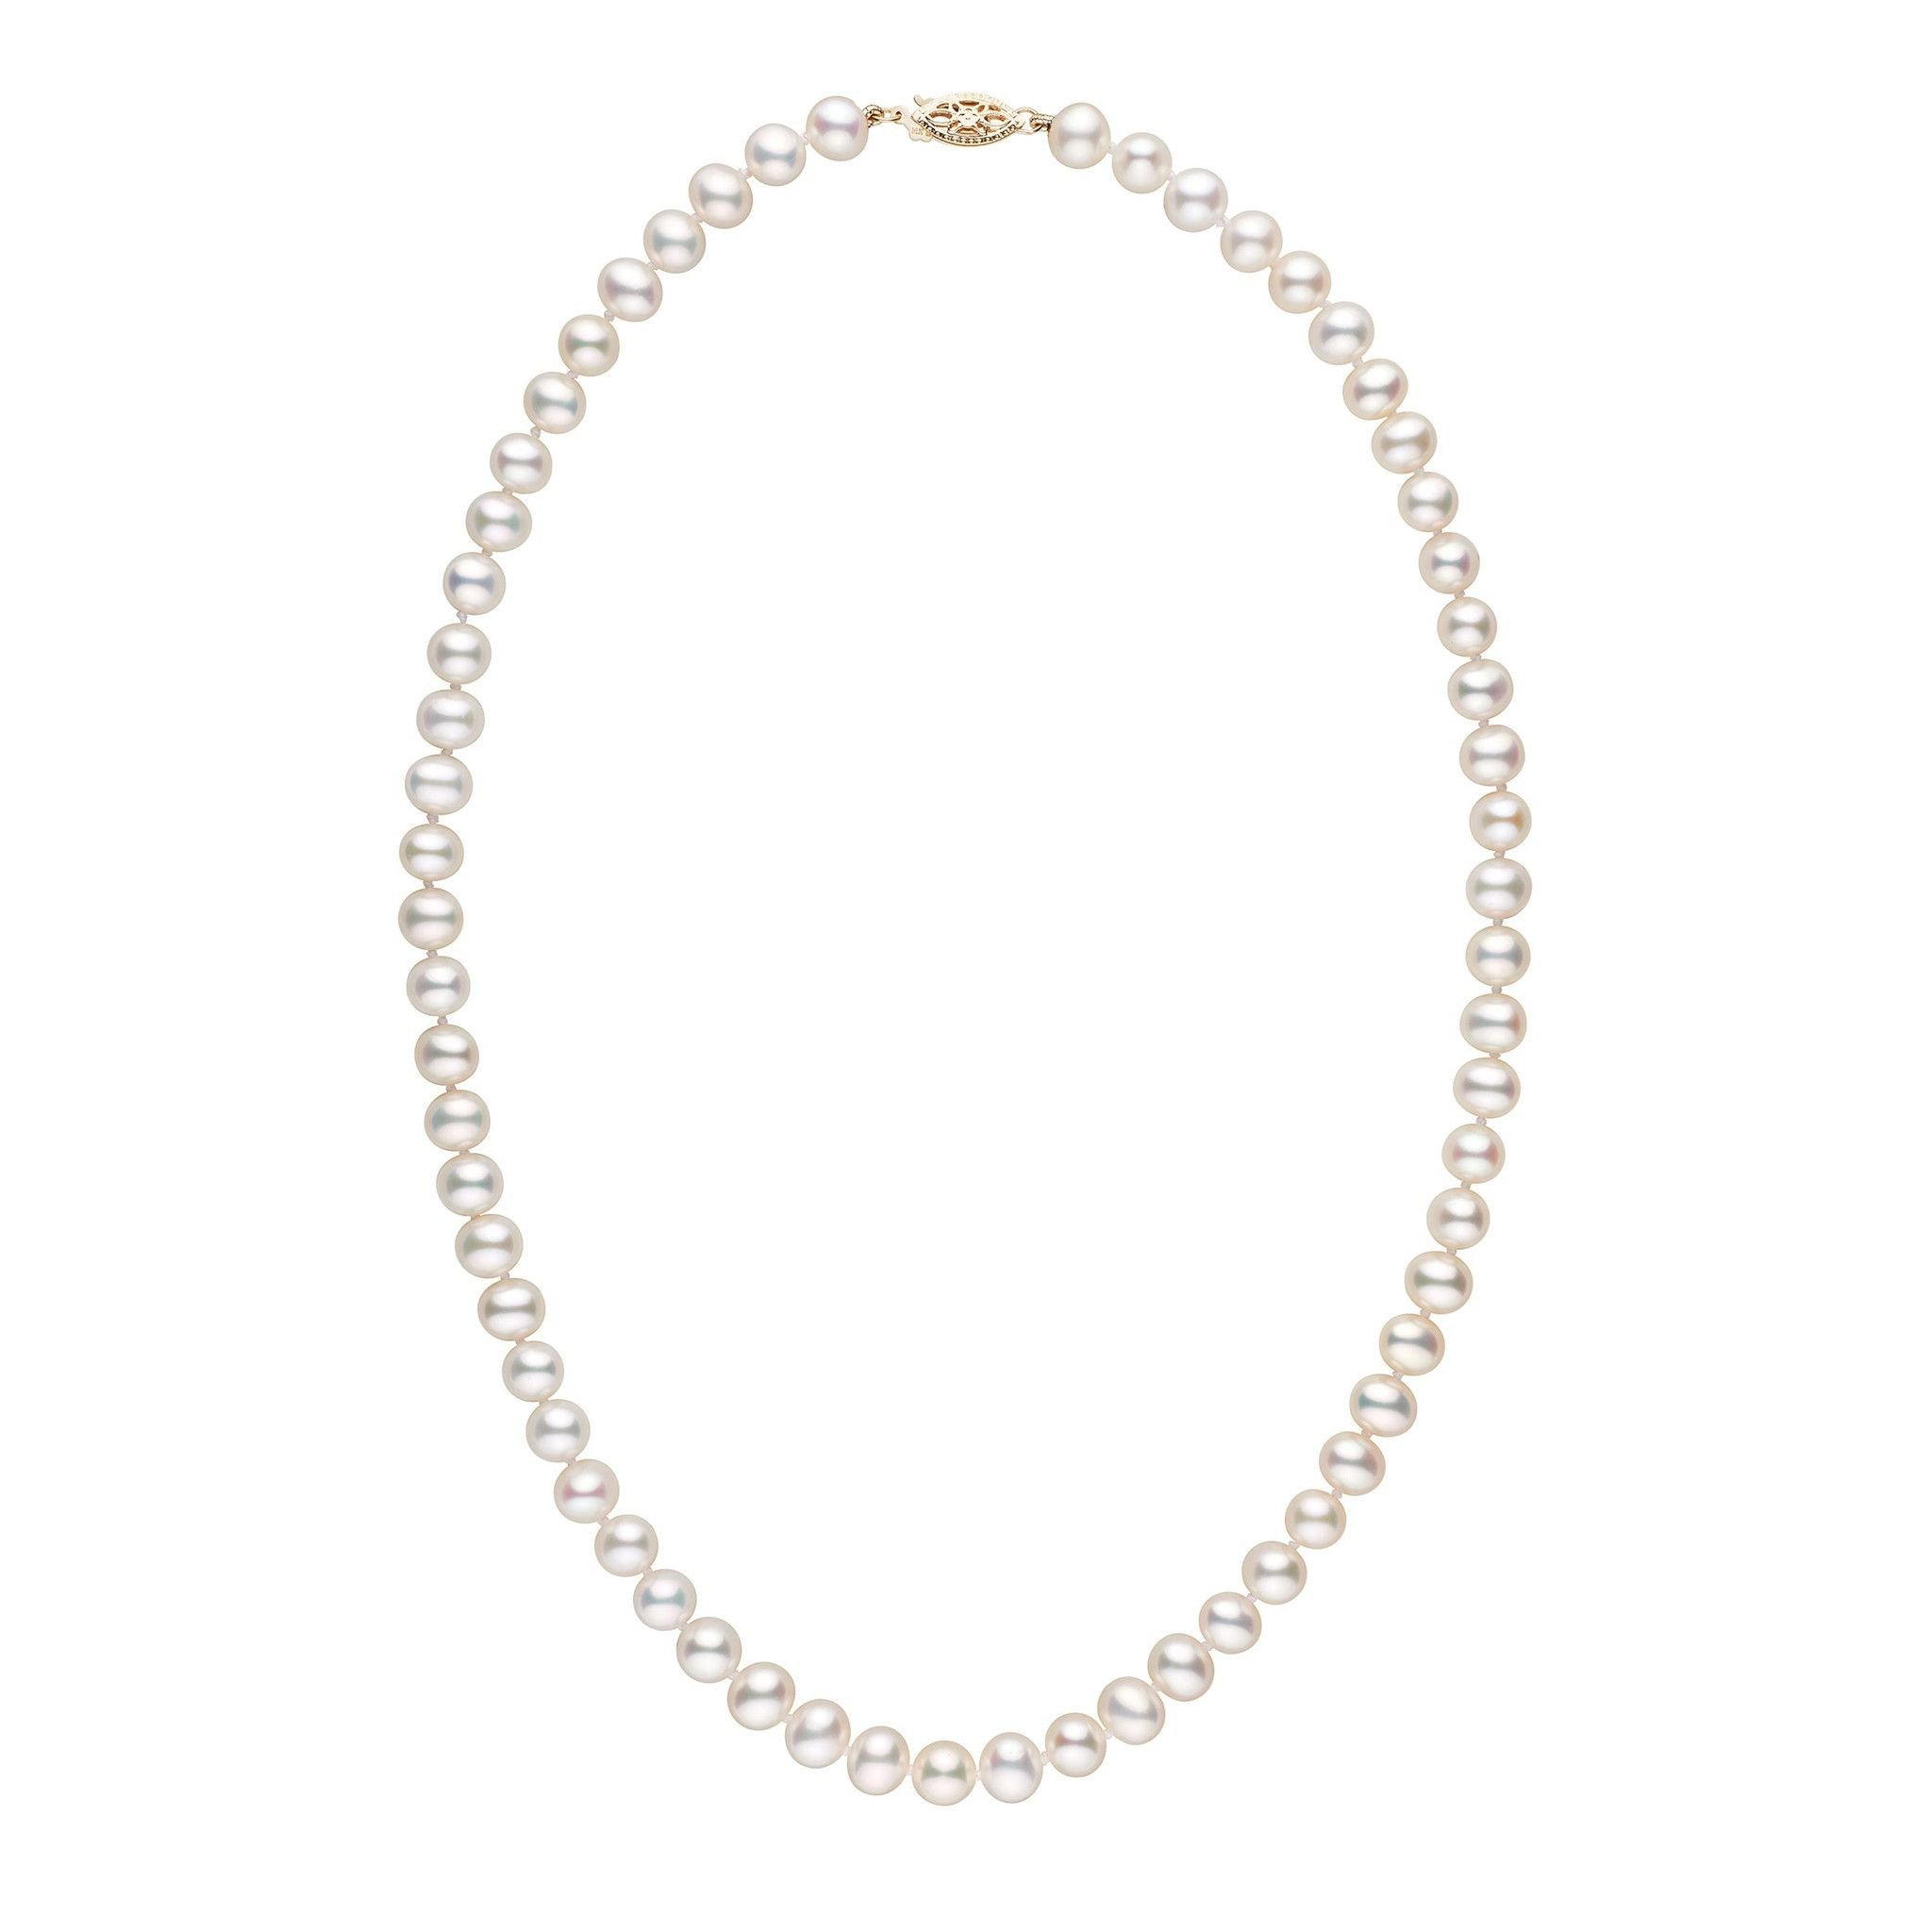 6.5-7.0 mm 18 Inch AA+ Metallic White Freshwater Pearl Necklace by Pearl Paradise